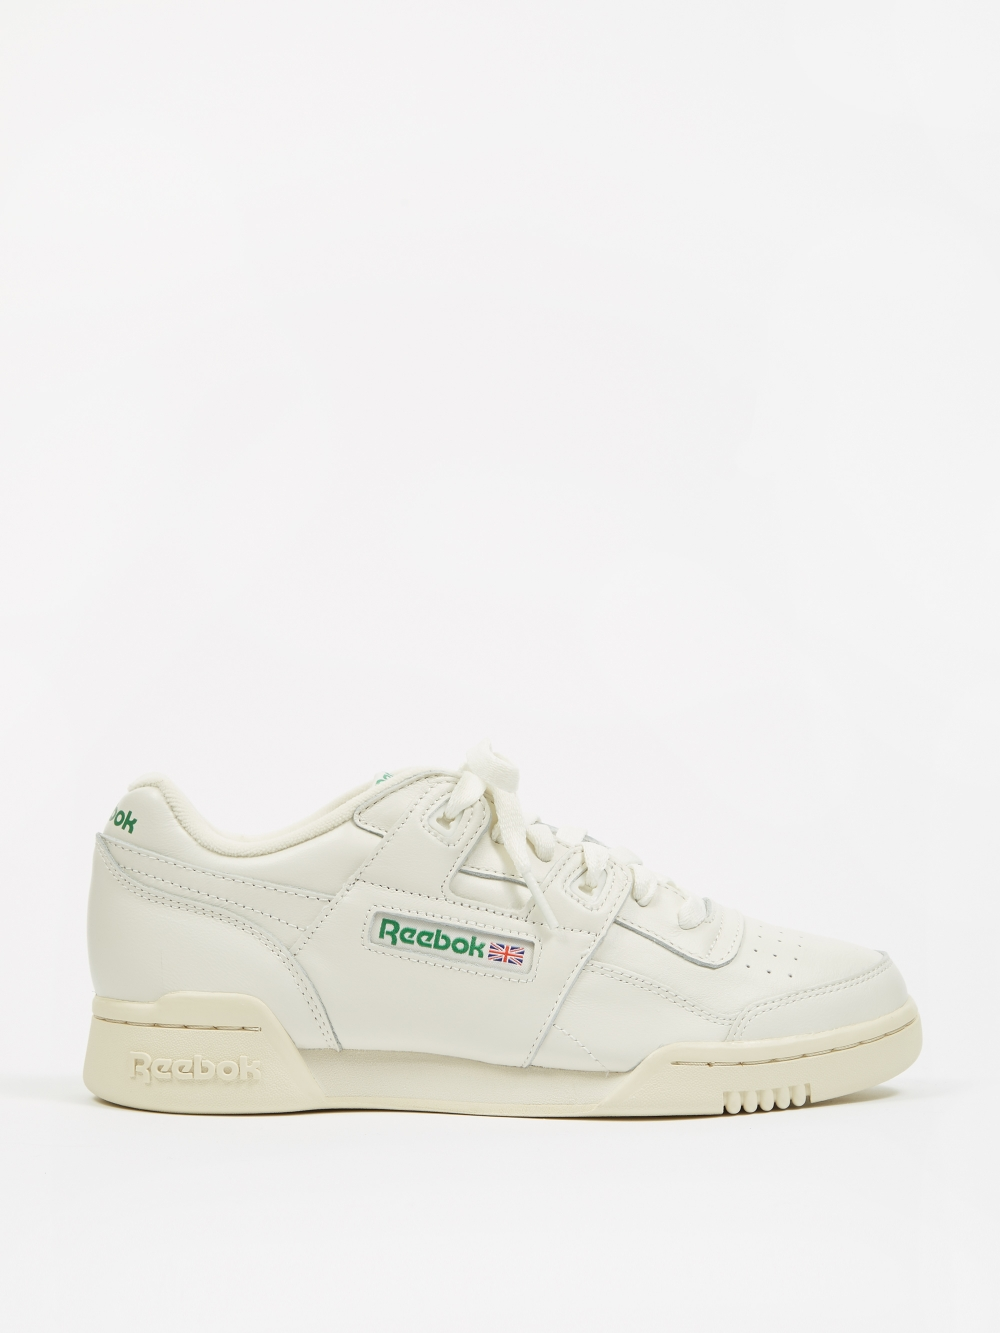 8886024b388 Reebok Workout Lo Plus - Vintage Chalk/Paper White/Glen Green (Image 1